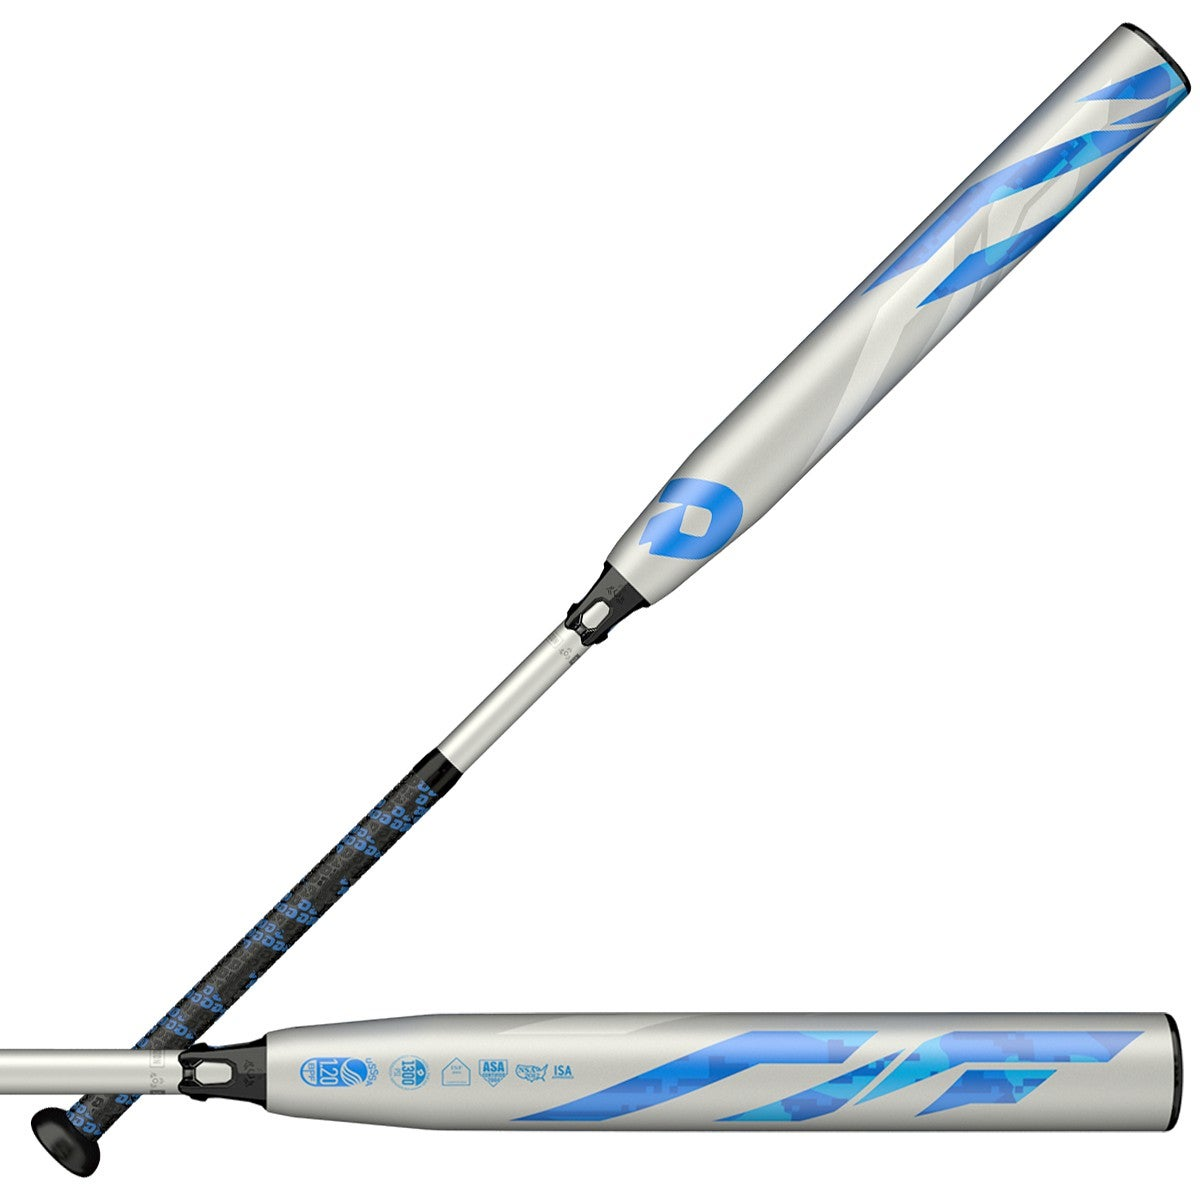 2019 D-LAB CF-XD (-10) with AOD Technology | DeMarini